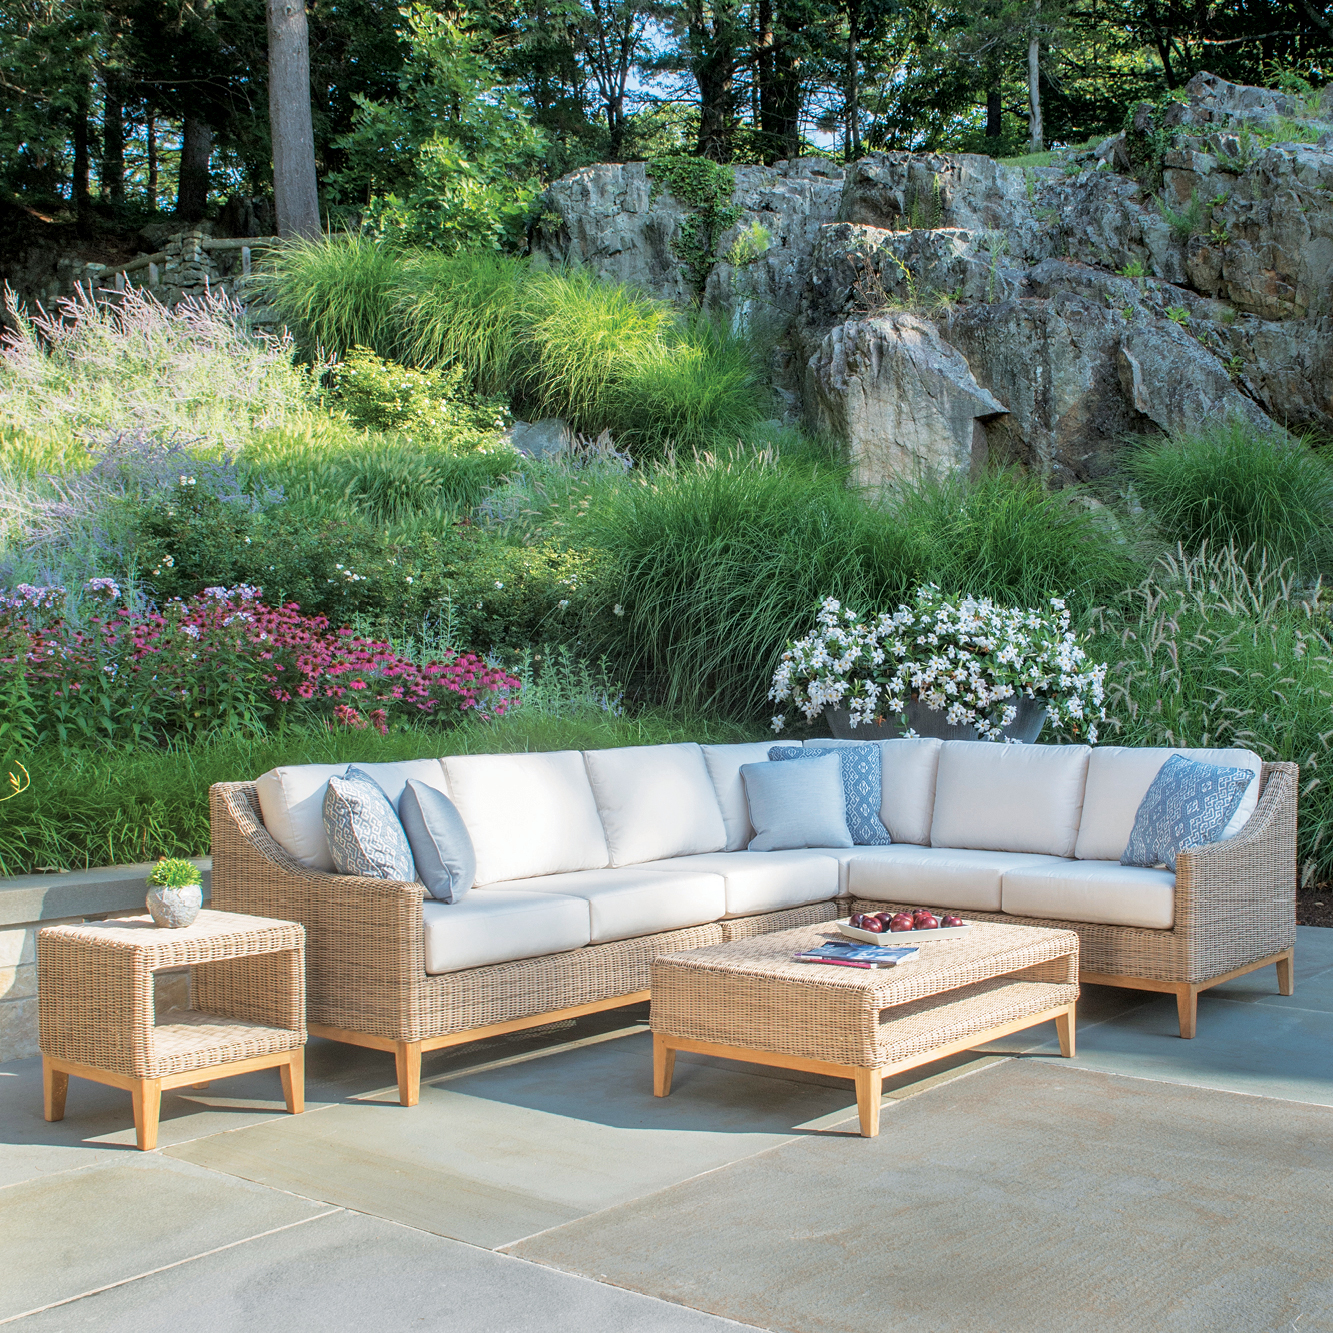 Jack Wills Patio Furniture.Outdoor Furniture Archives At Home In Arkansas